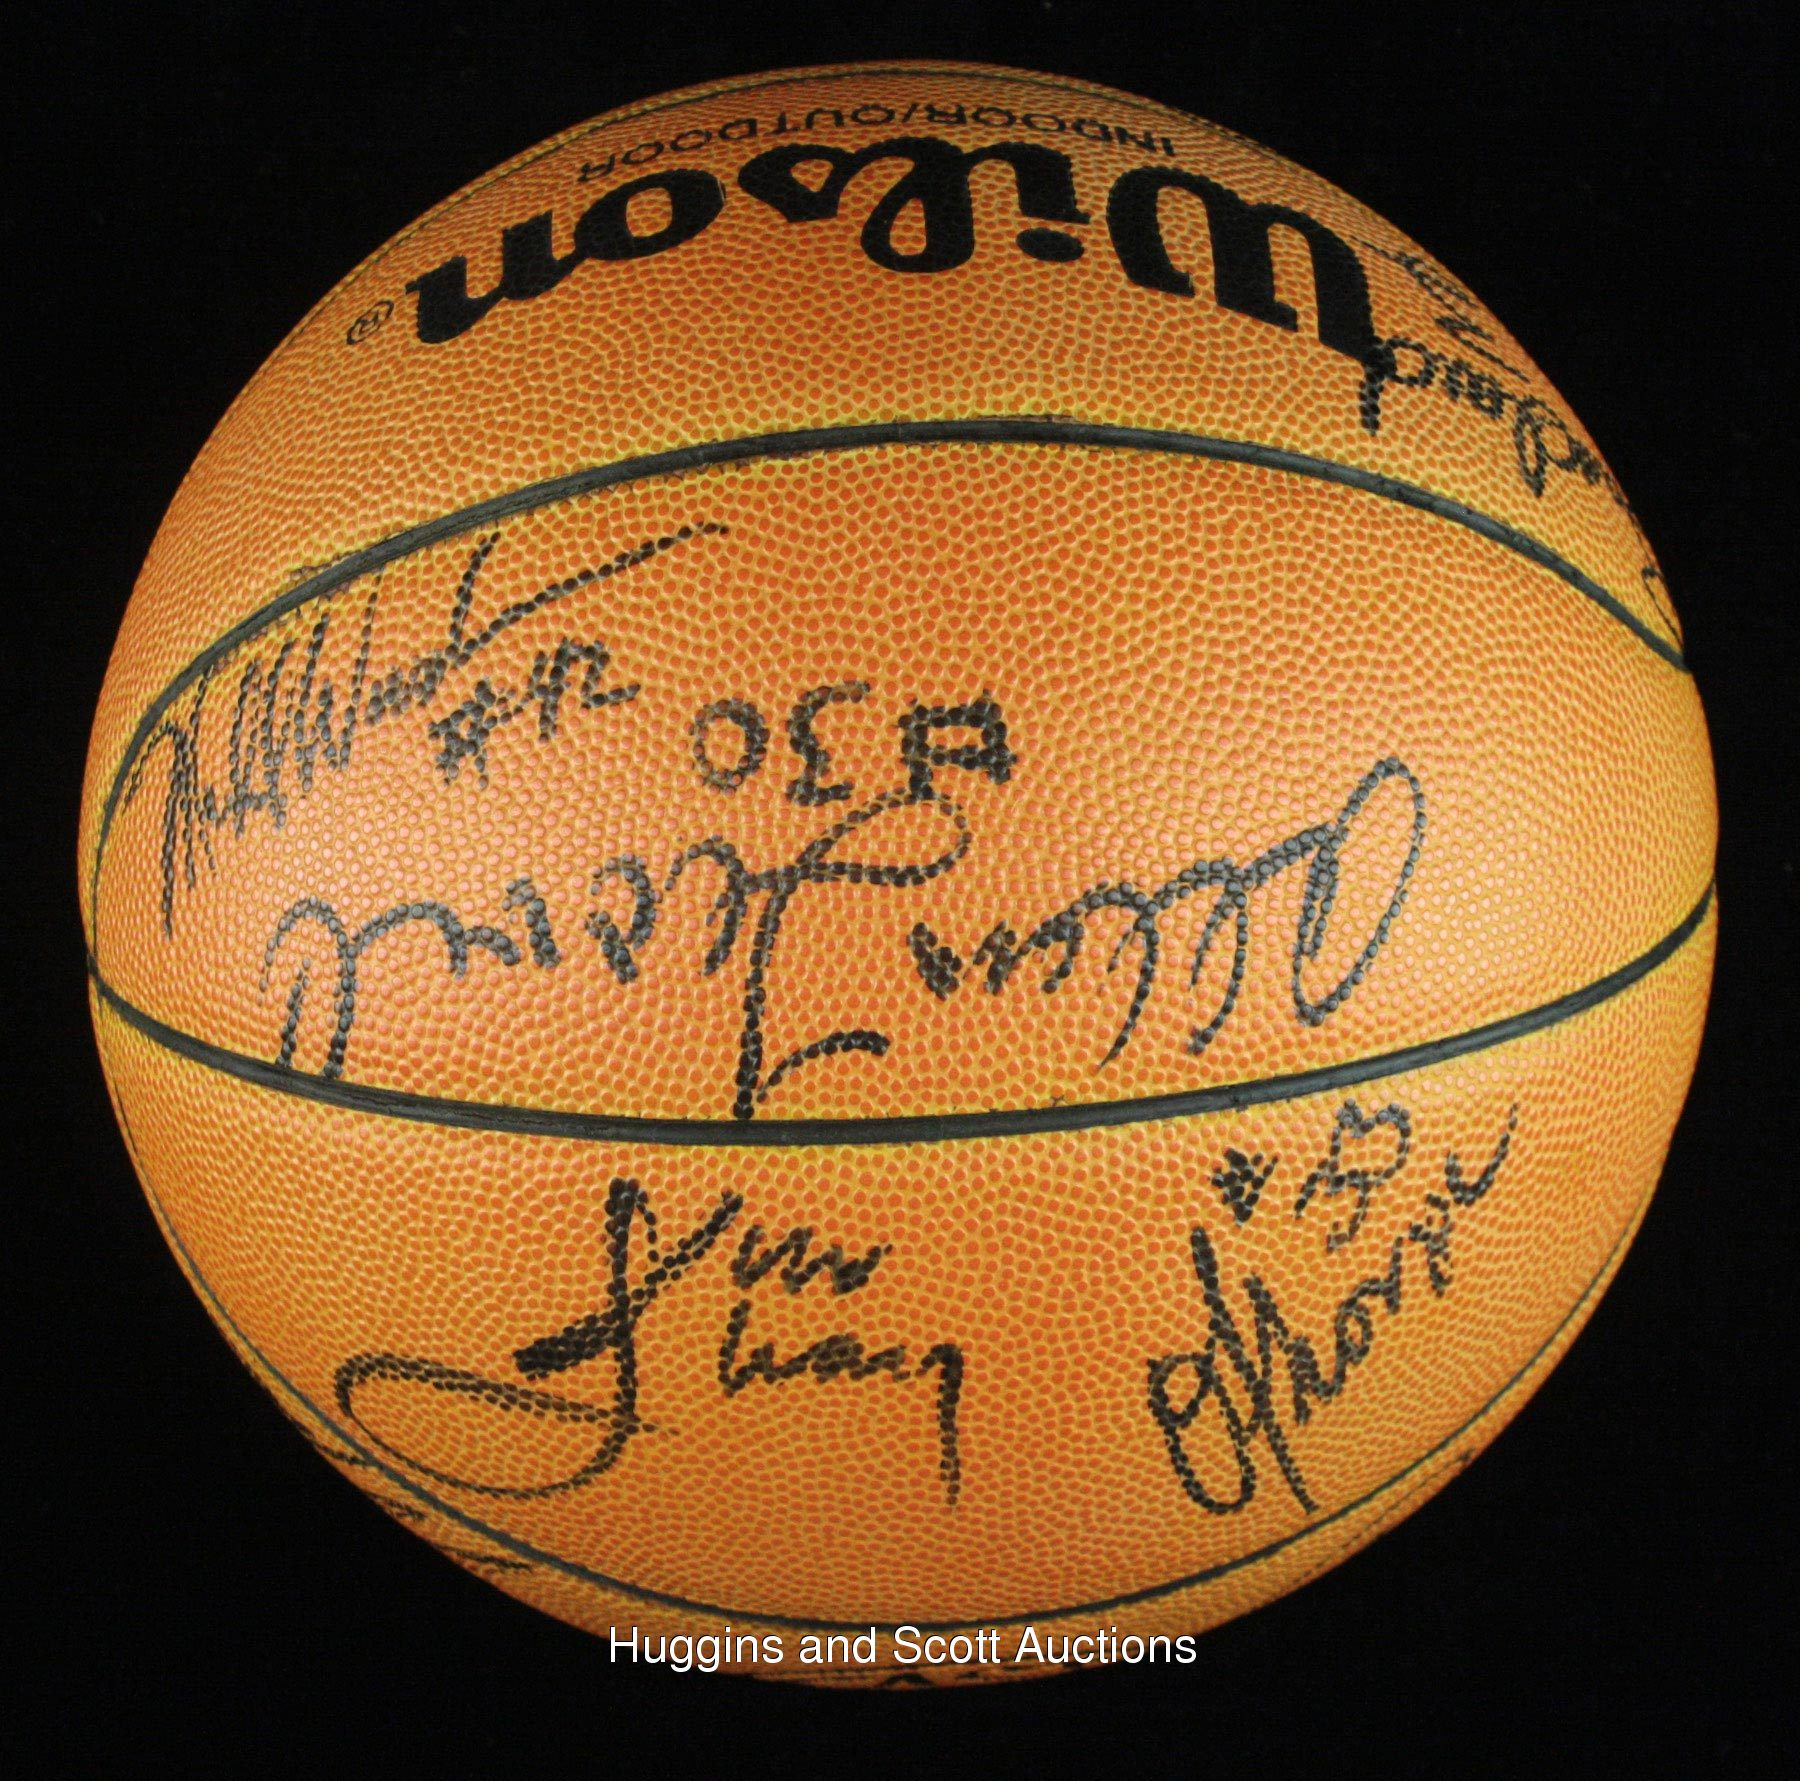 Houston Rockets Defensive Coach: 1988-89 Houston Rockets Team-Signed Basketball With